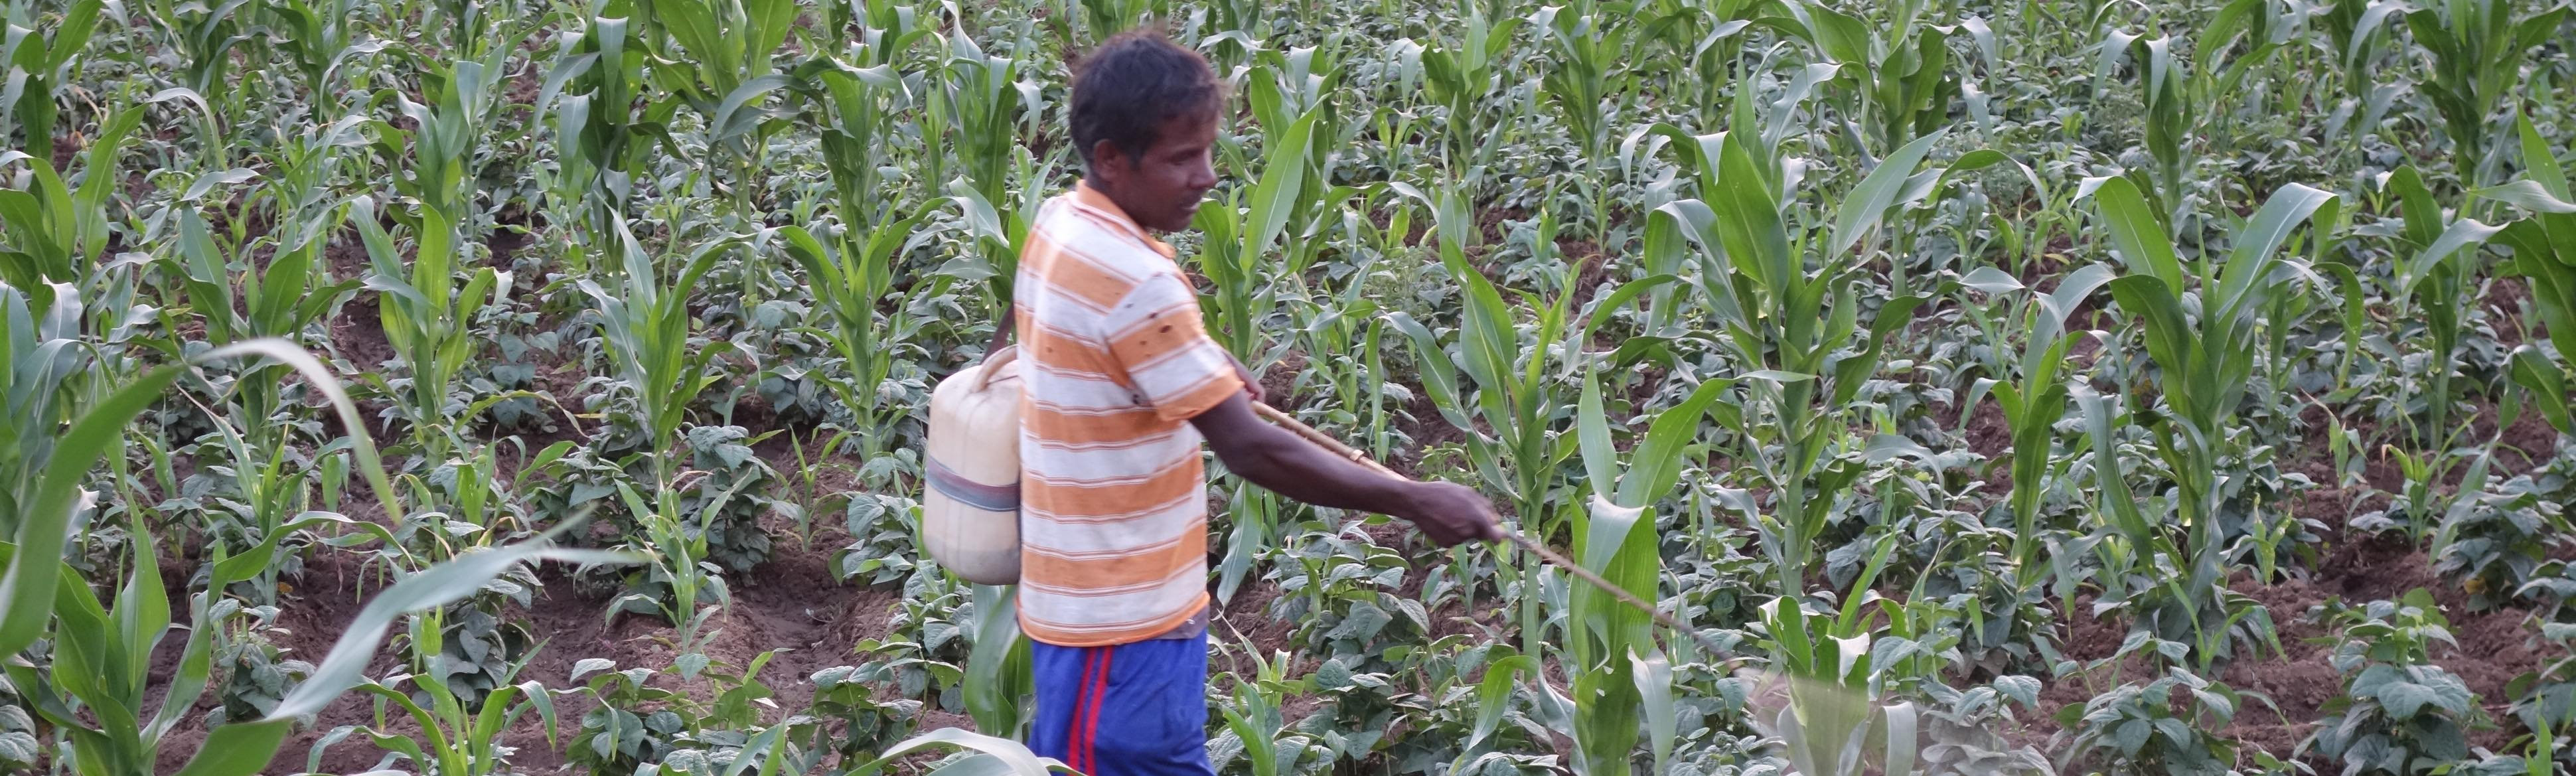 Farmers Shouldn't Have to Die Before the Government Addresses Rampant Pesticide Misuse